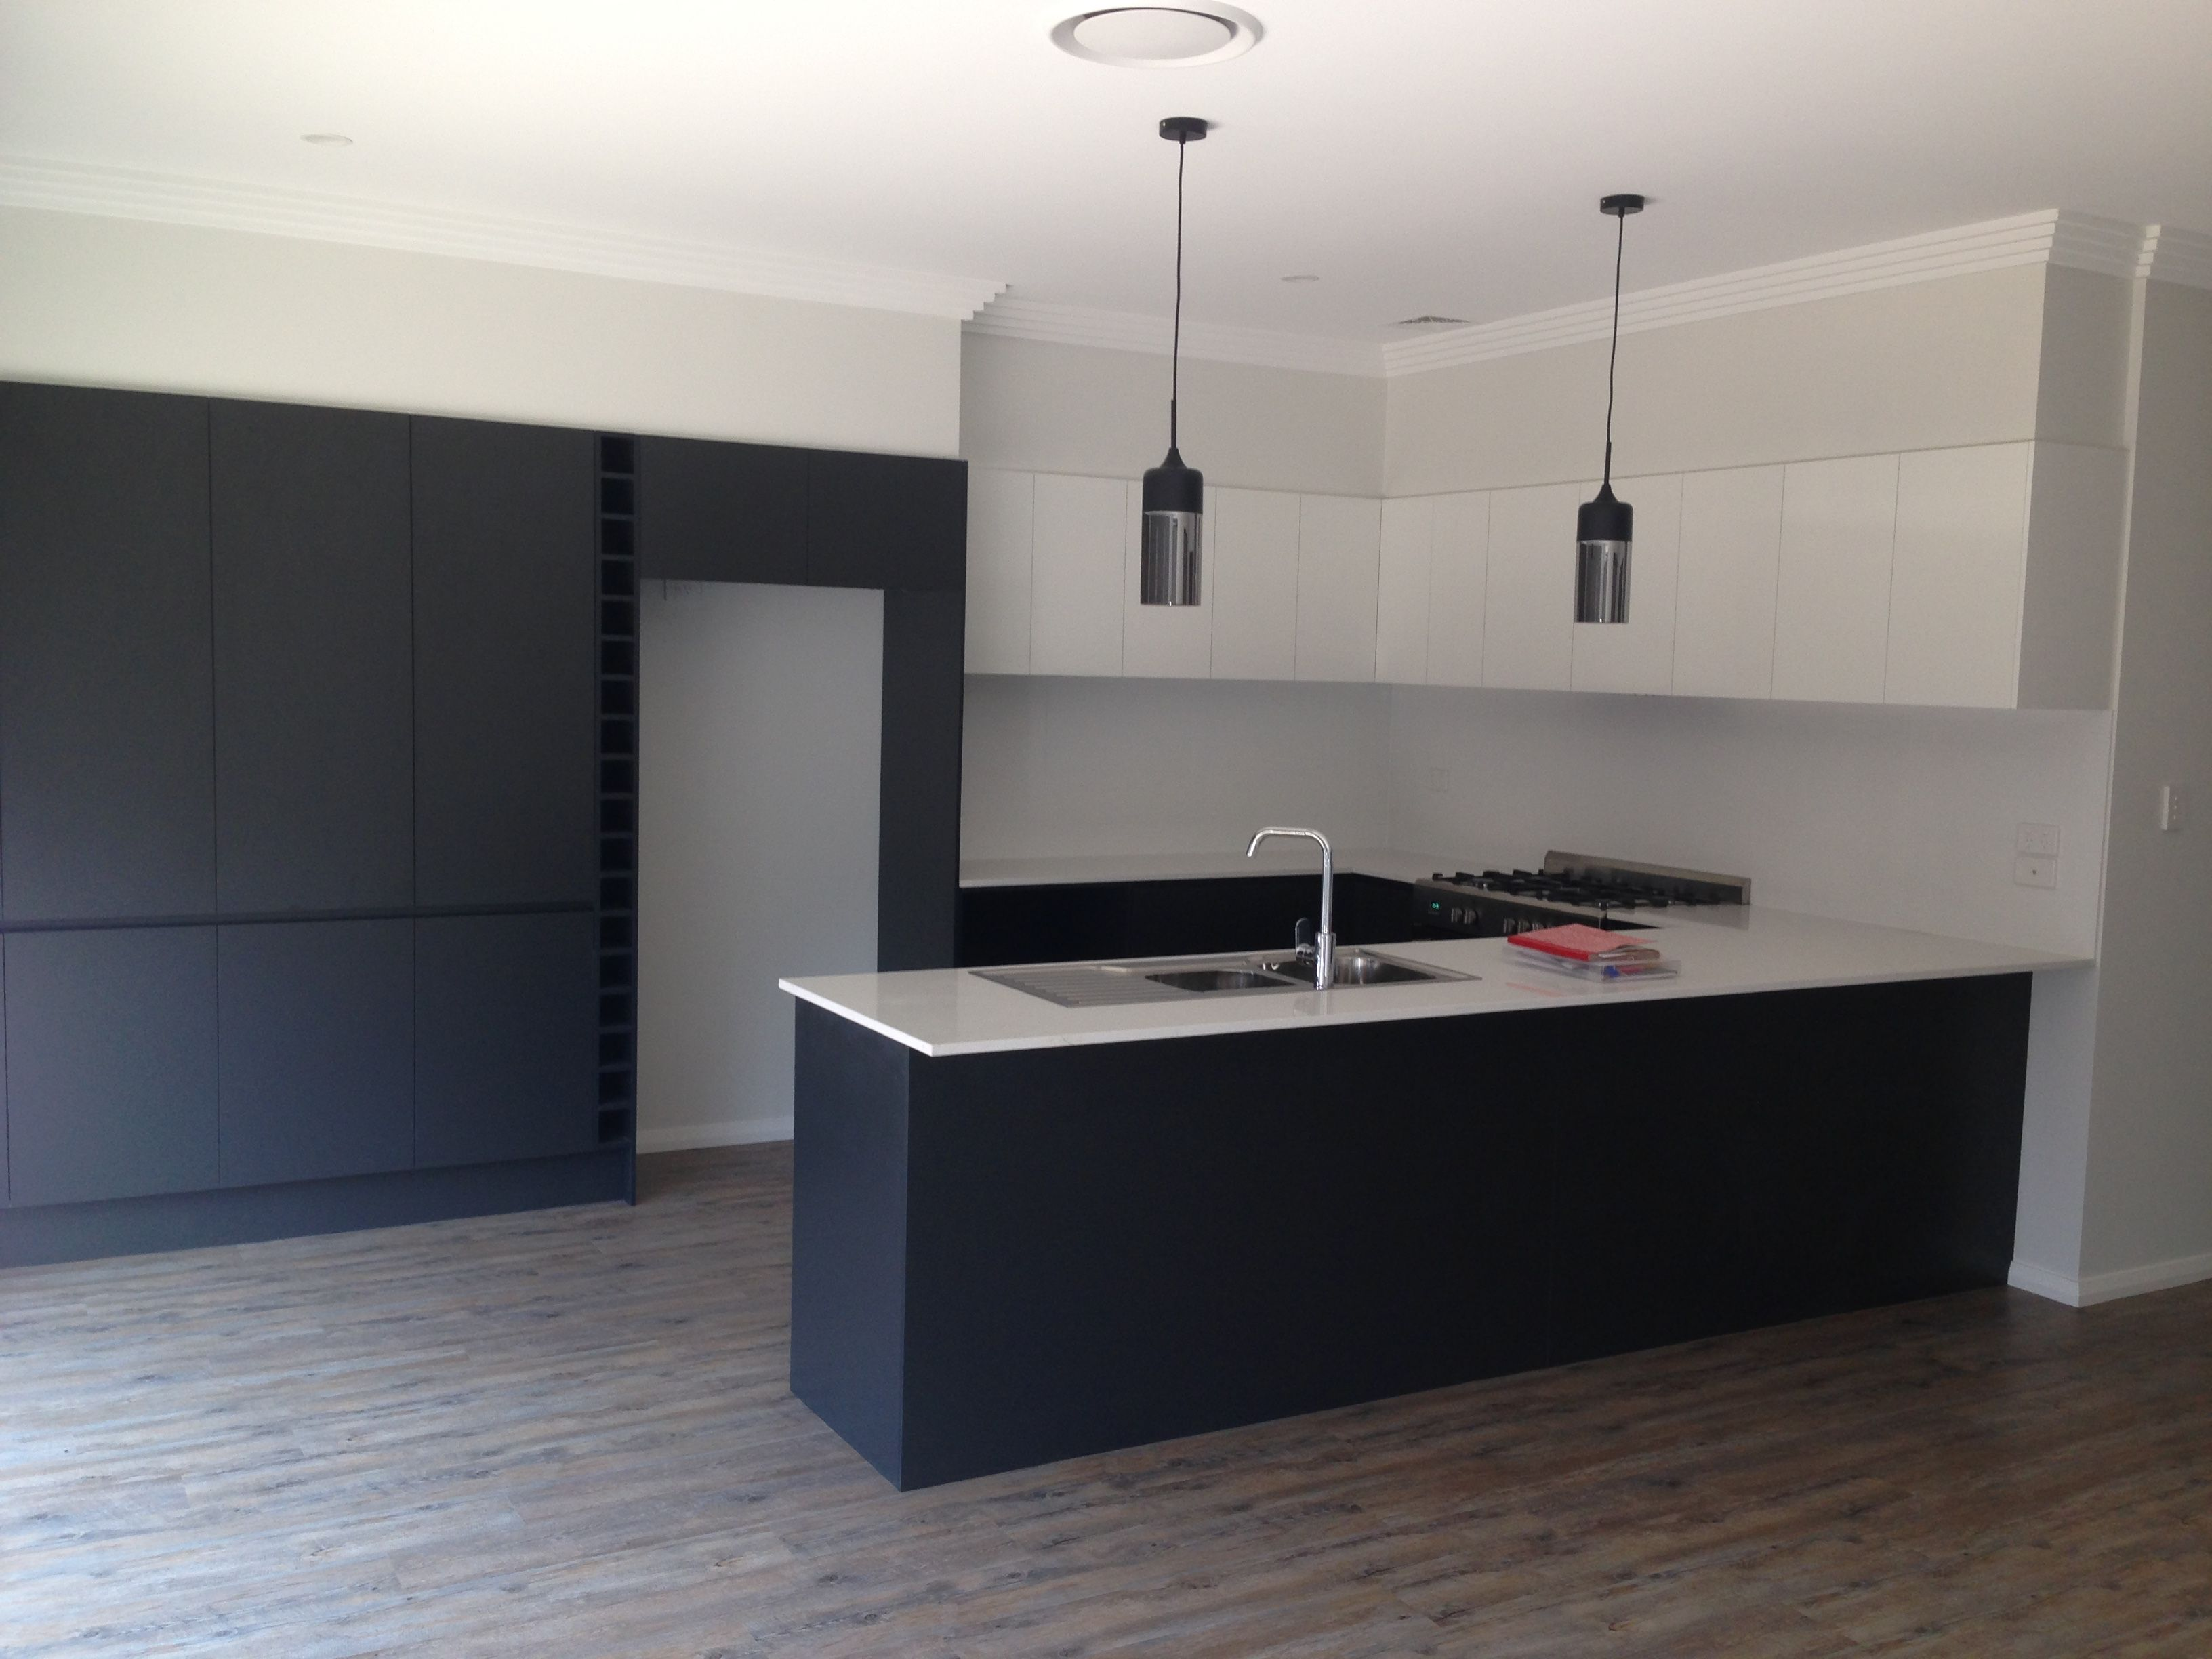 Formica Keuken Kitchen By Inz Kitchens Using Formica 39snowdrift 39 Gloss